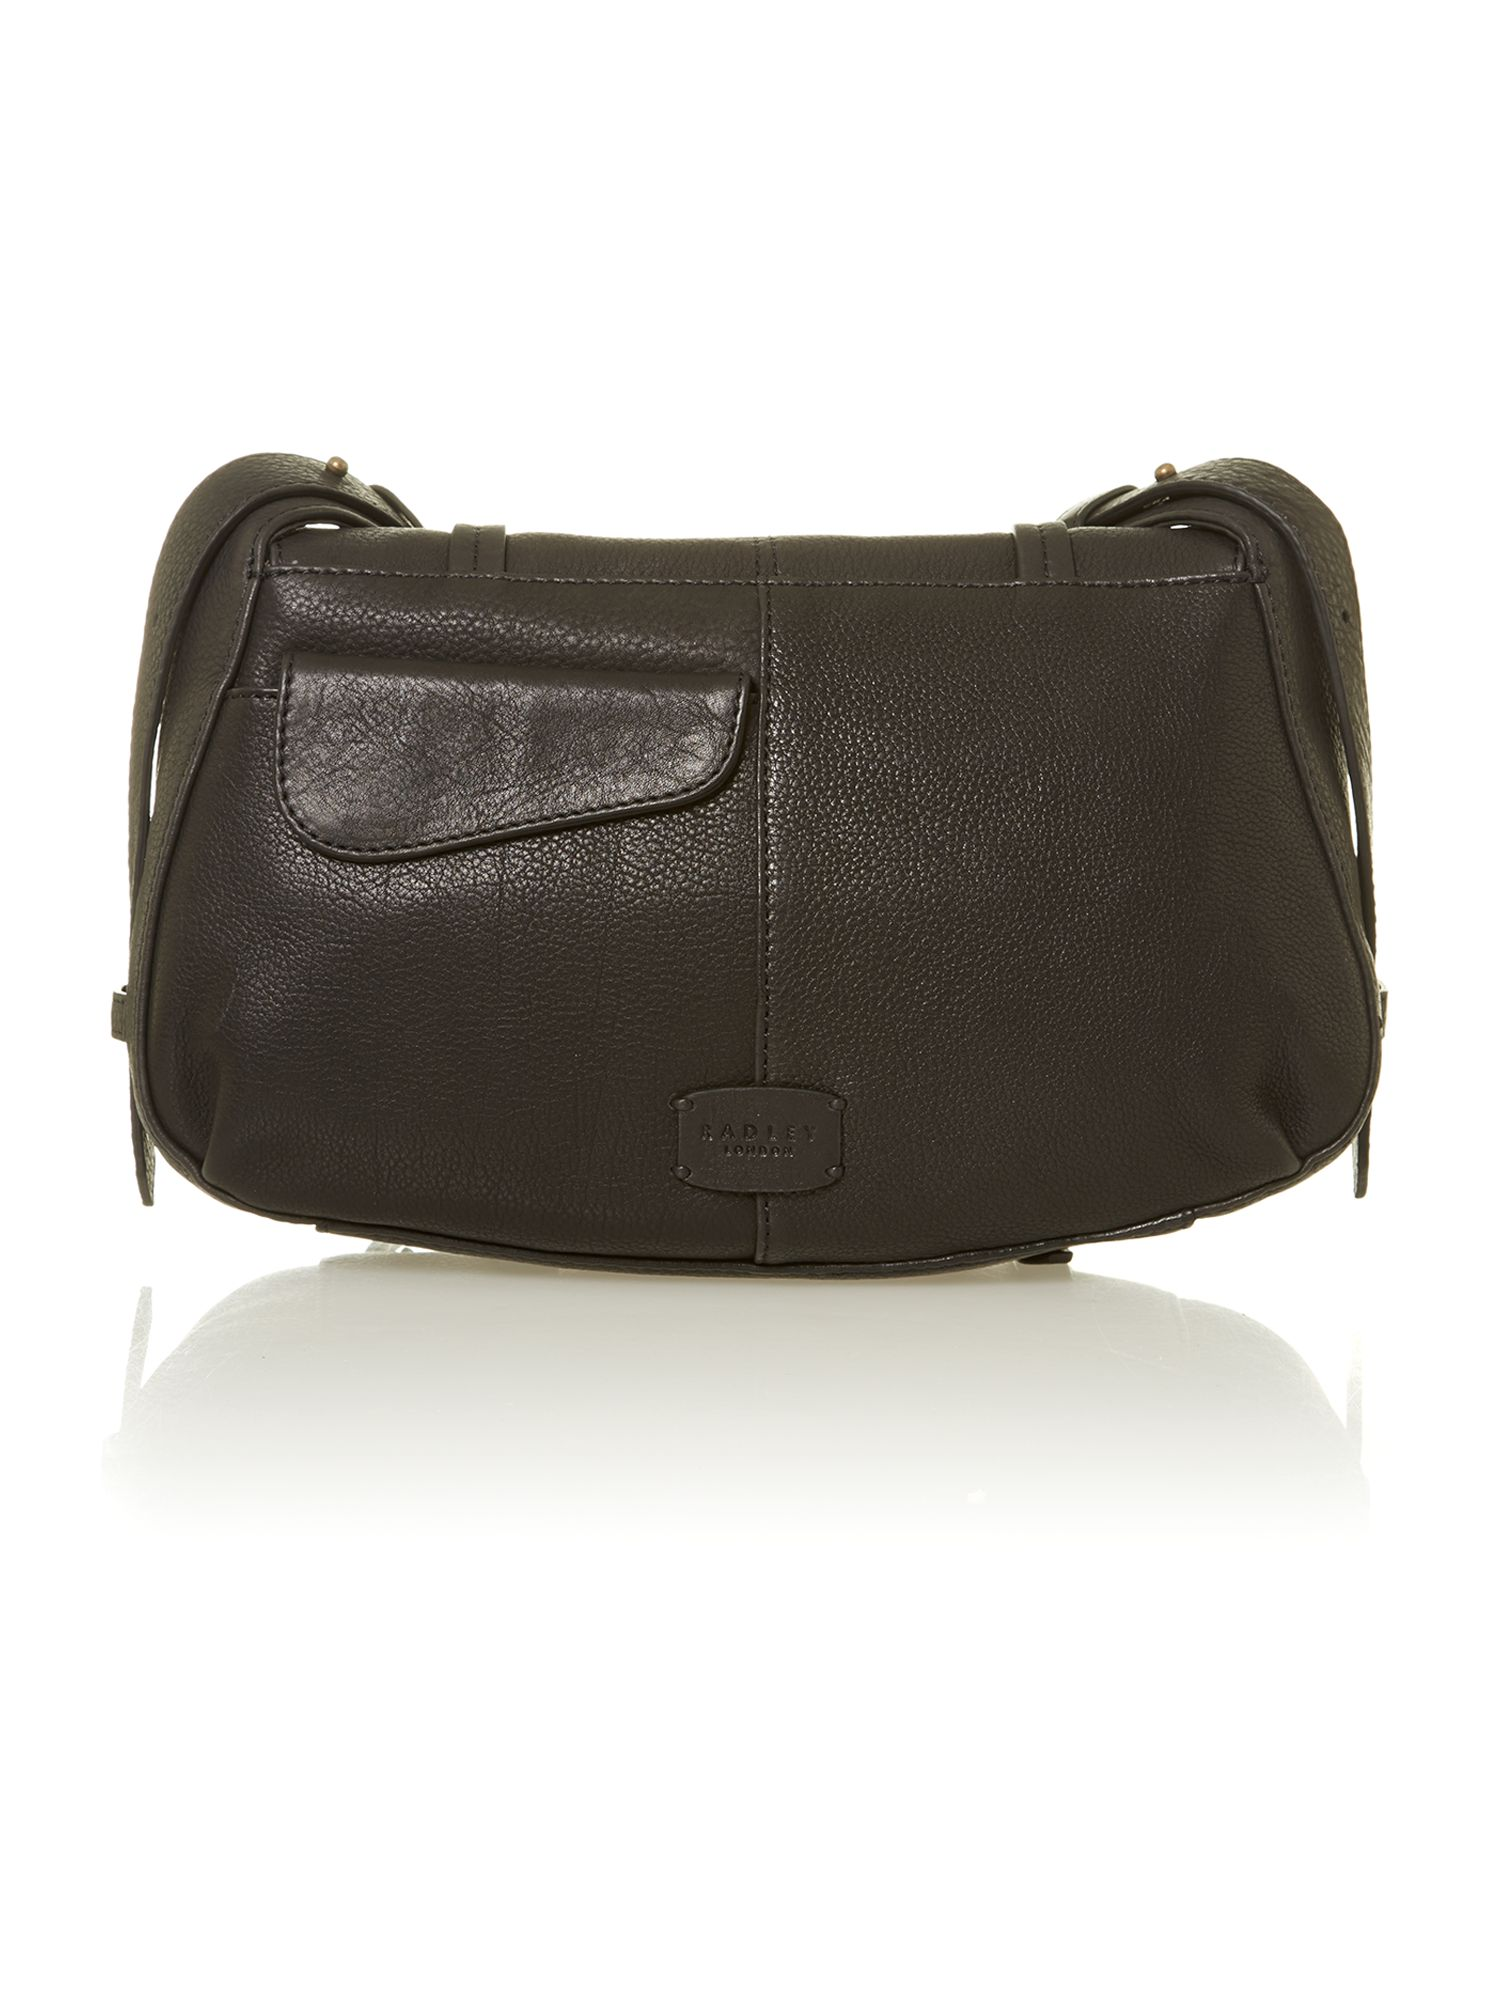 Grosvenor black medium shoulder bag